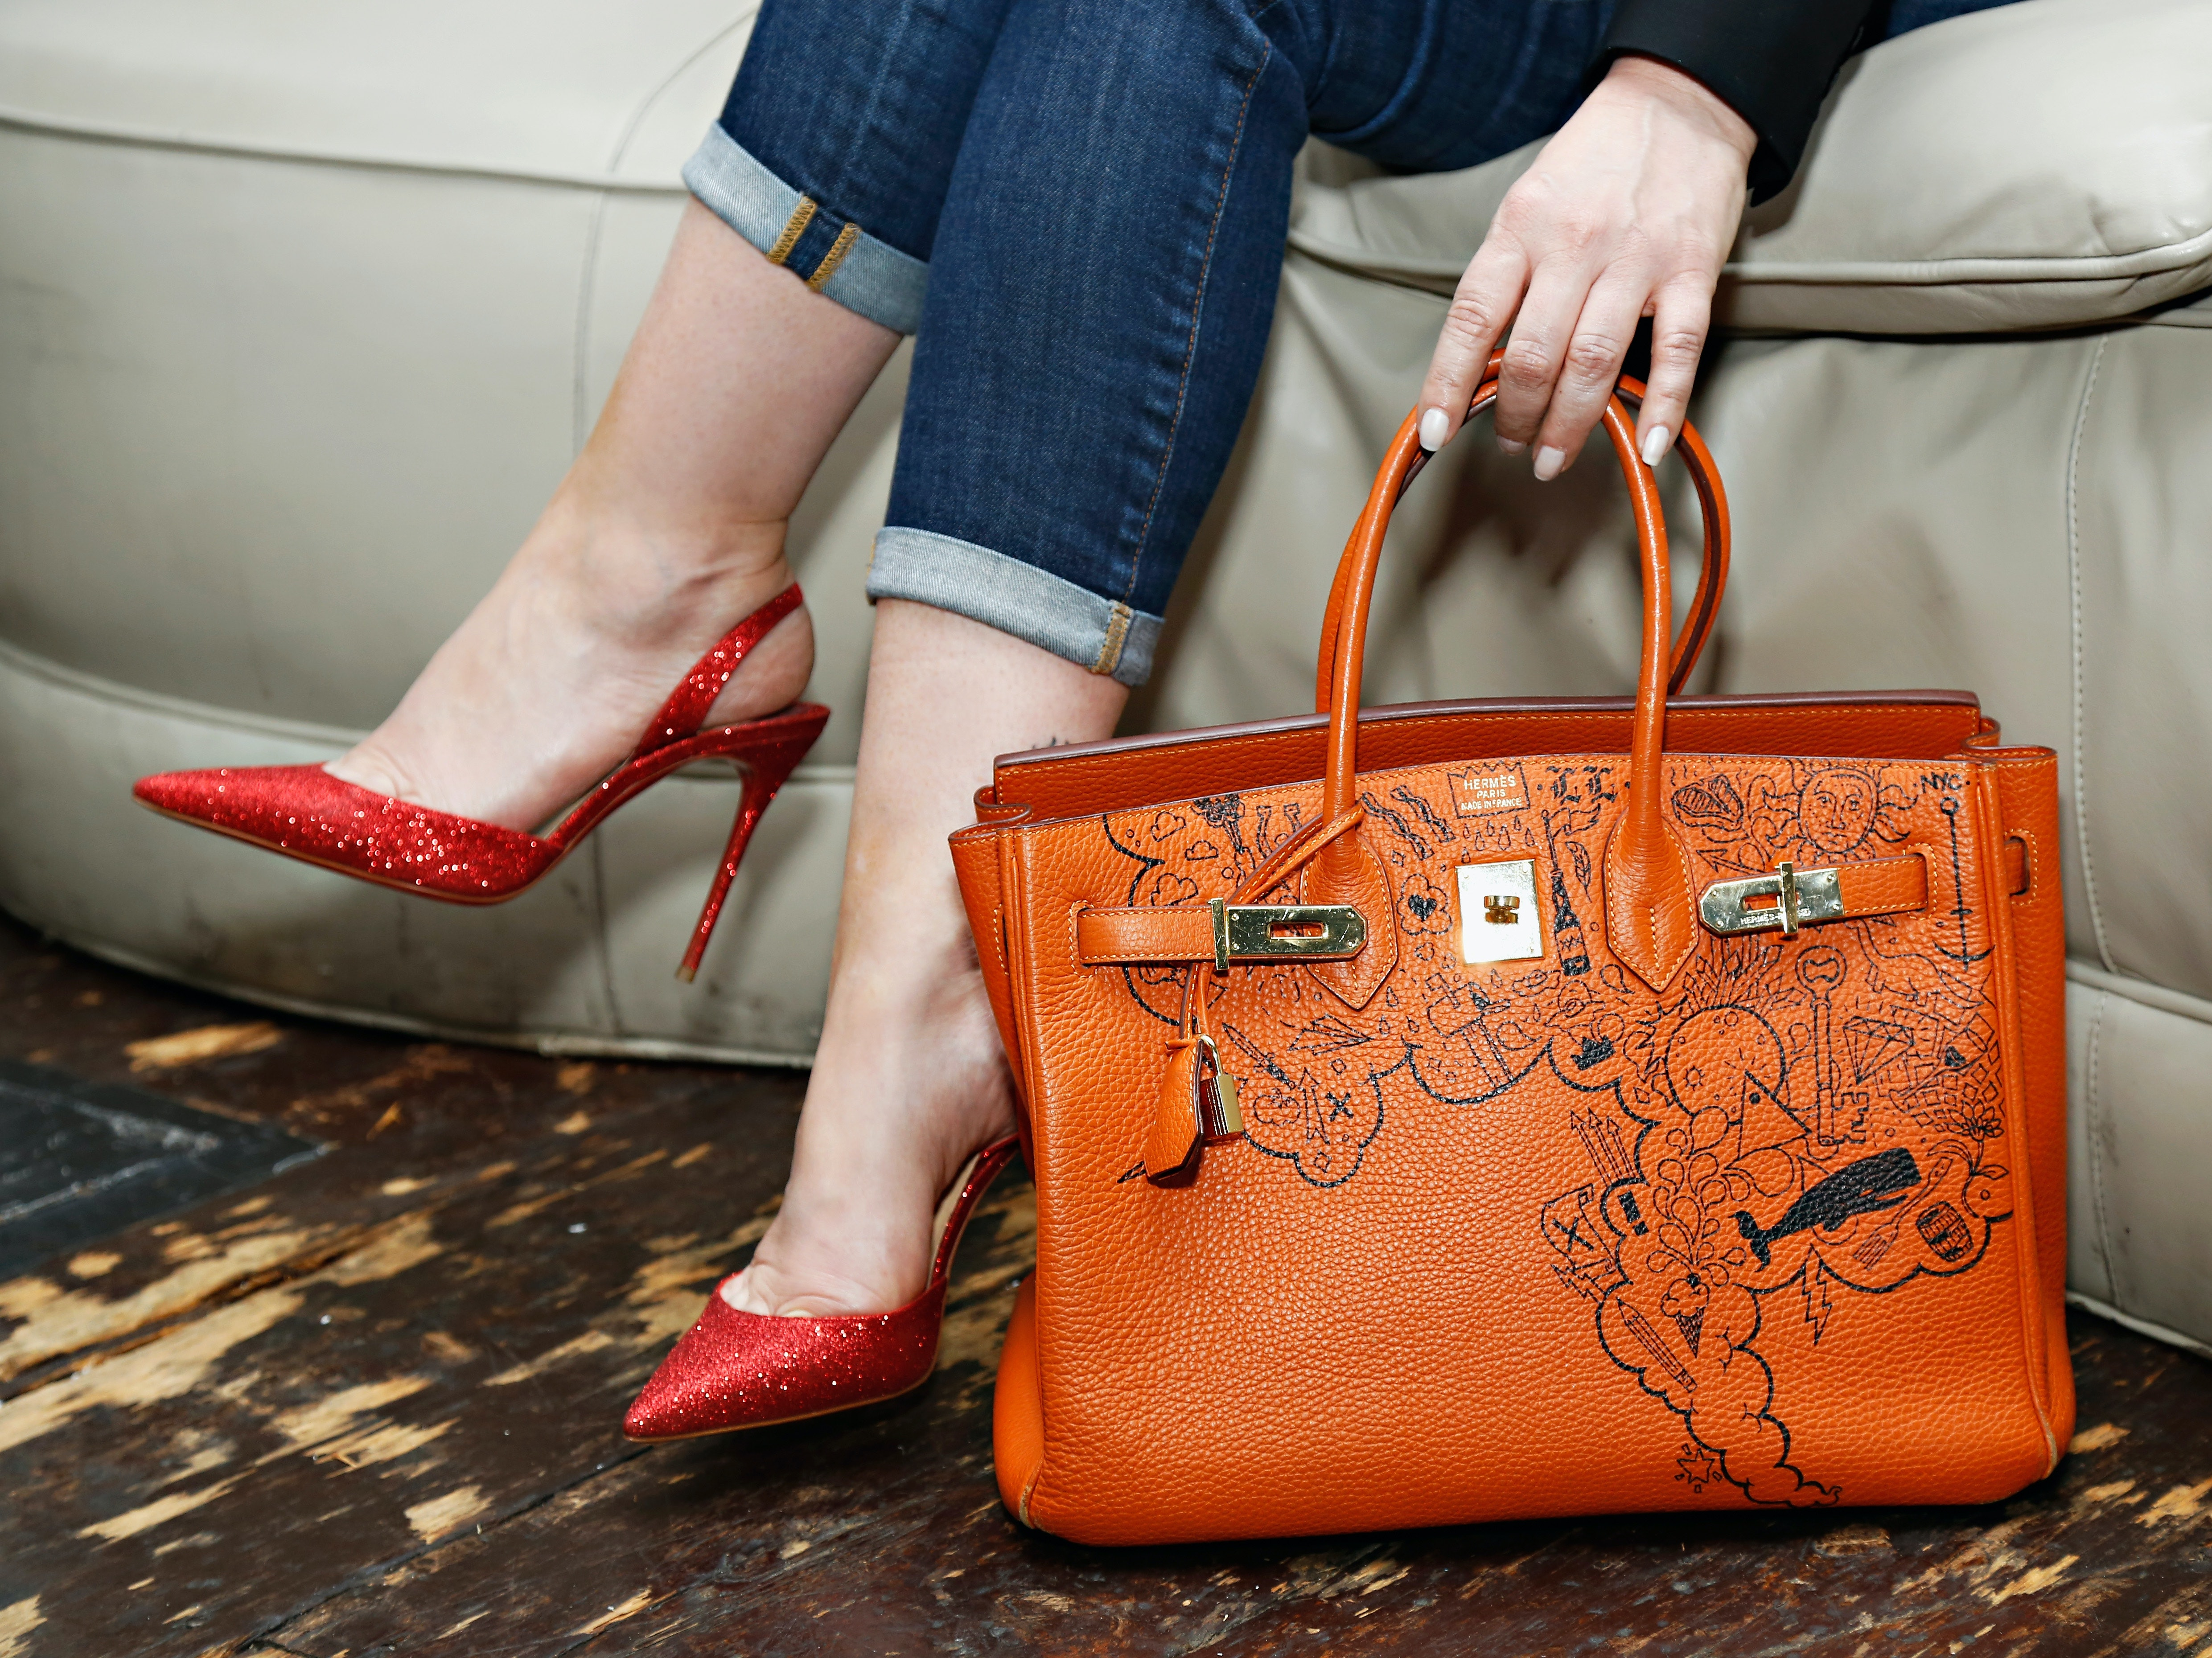 A Fake Birkin Gym Bag Lets You Channel Hermes During Your Next Sweat Sesh 52ebf1bb7e994